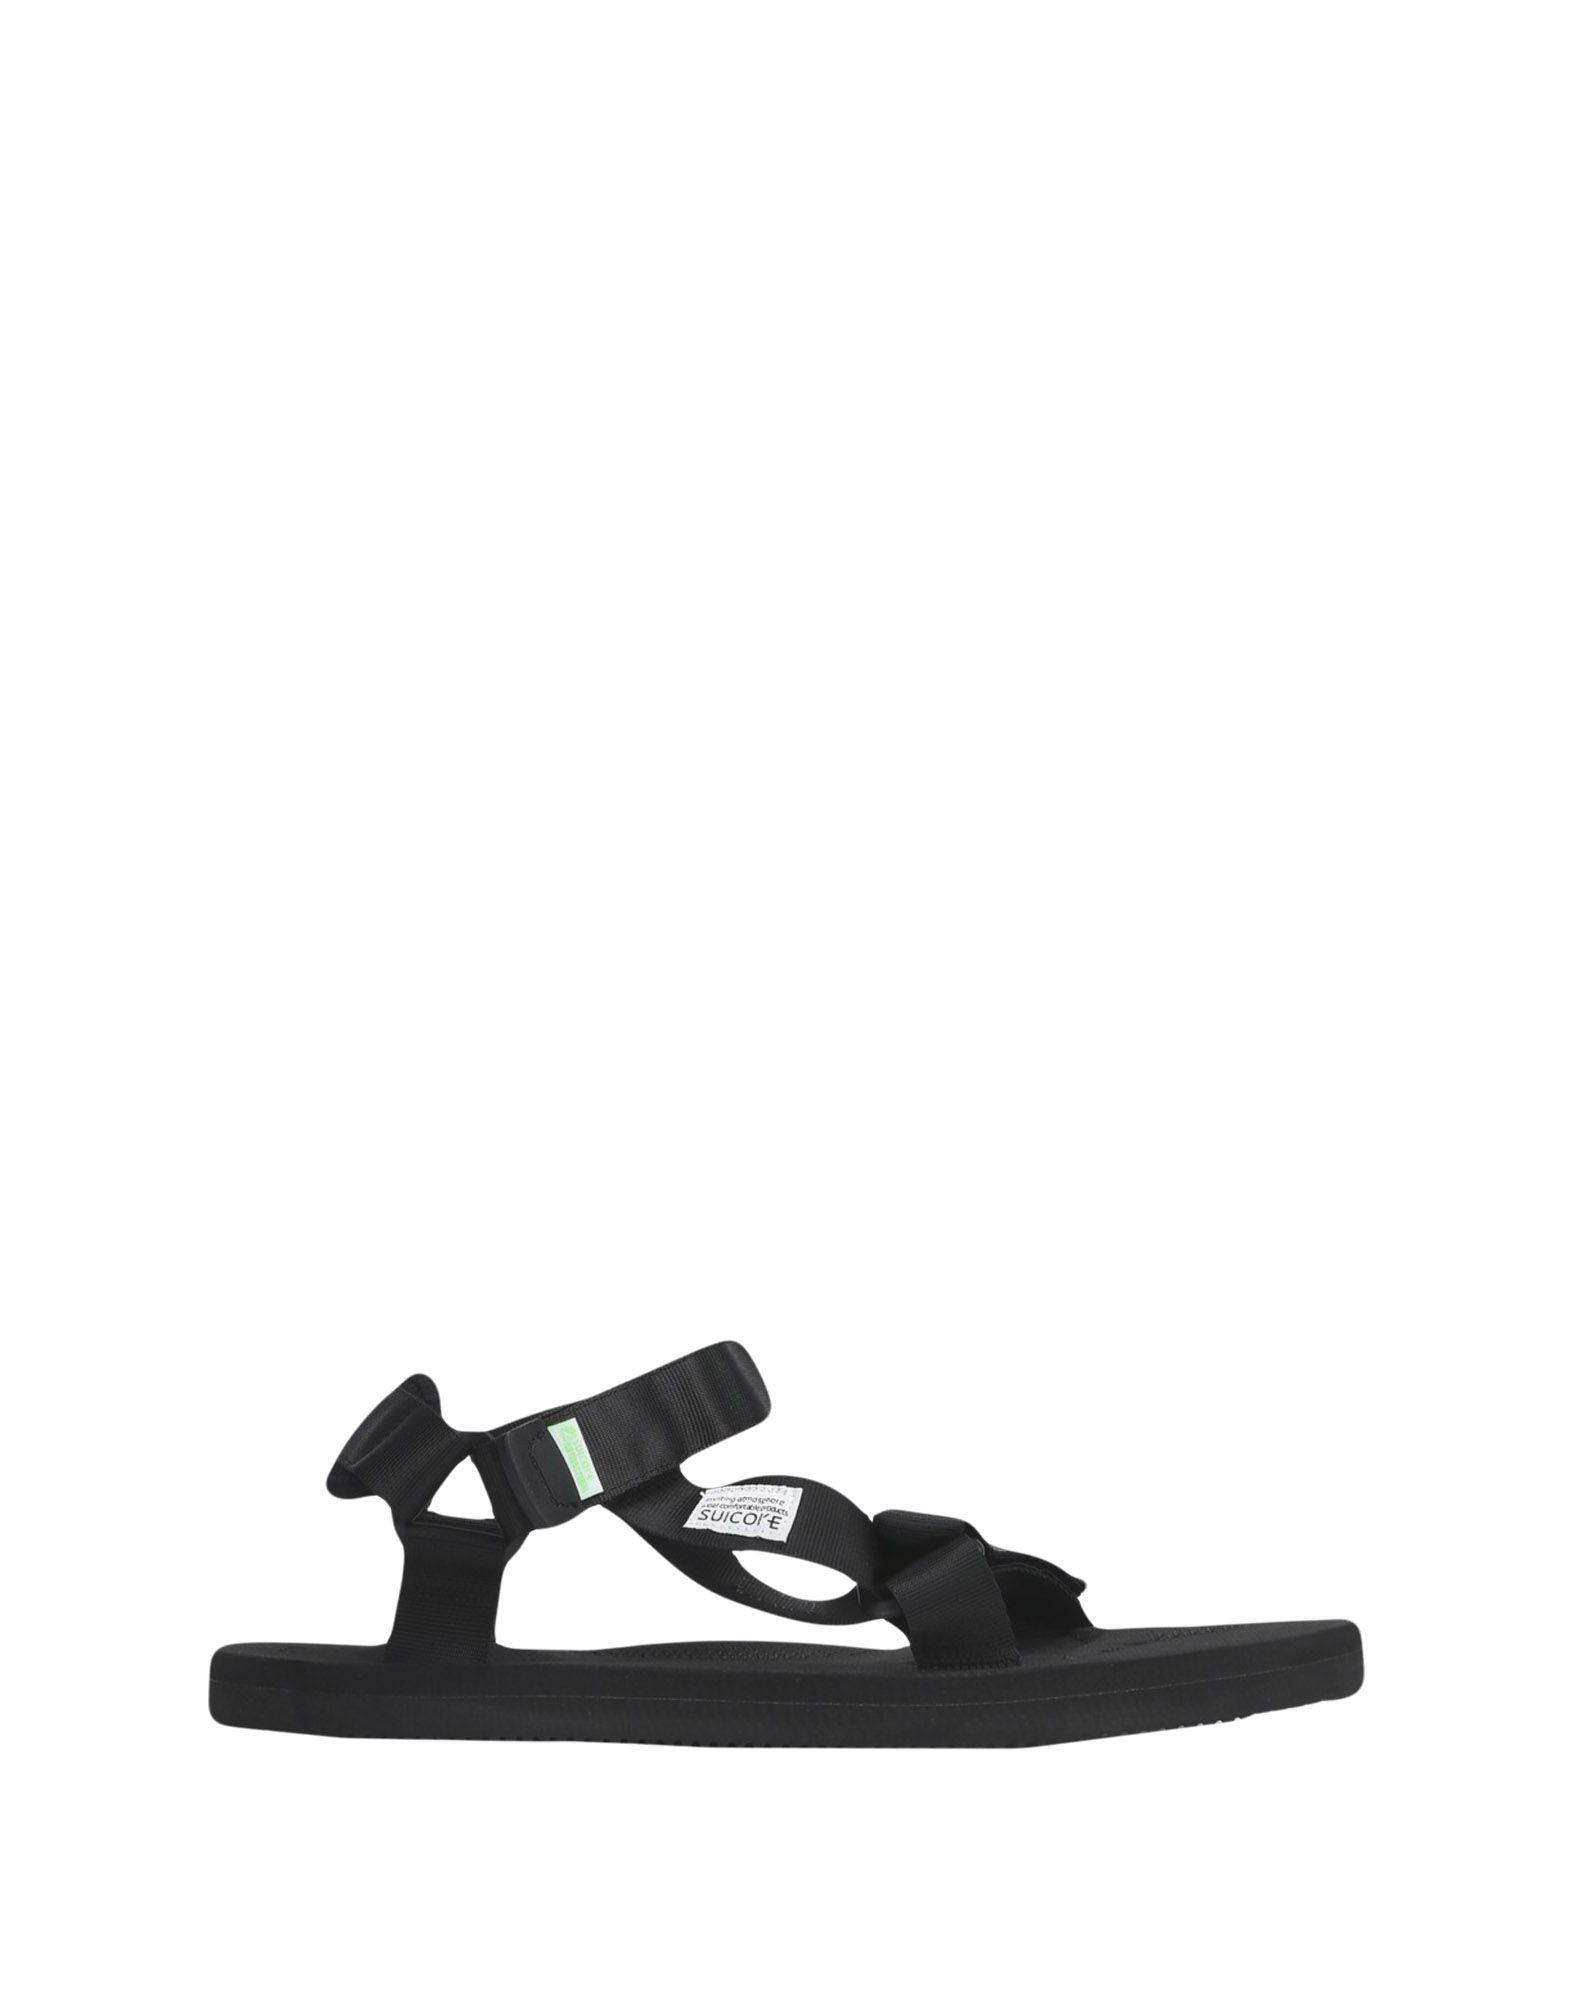 35484401ad7c Suicoke Sandals in Black for Men - Lyst